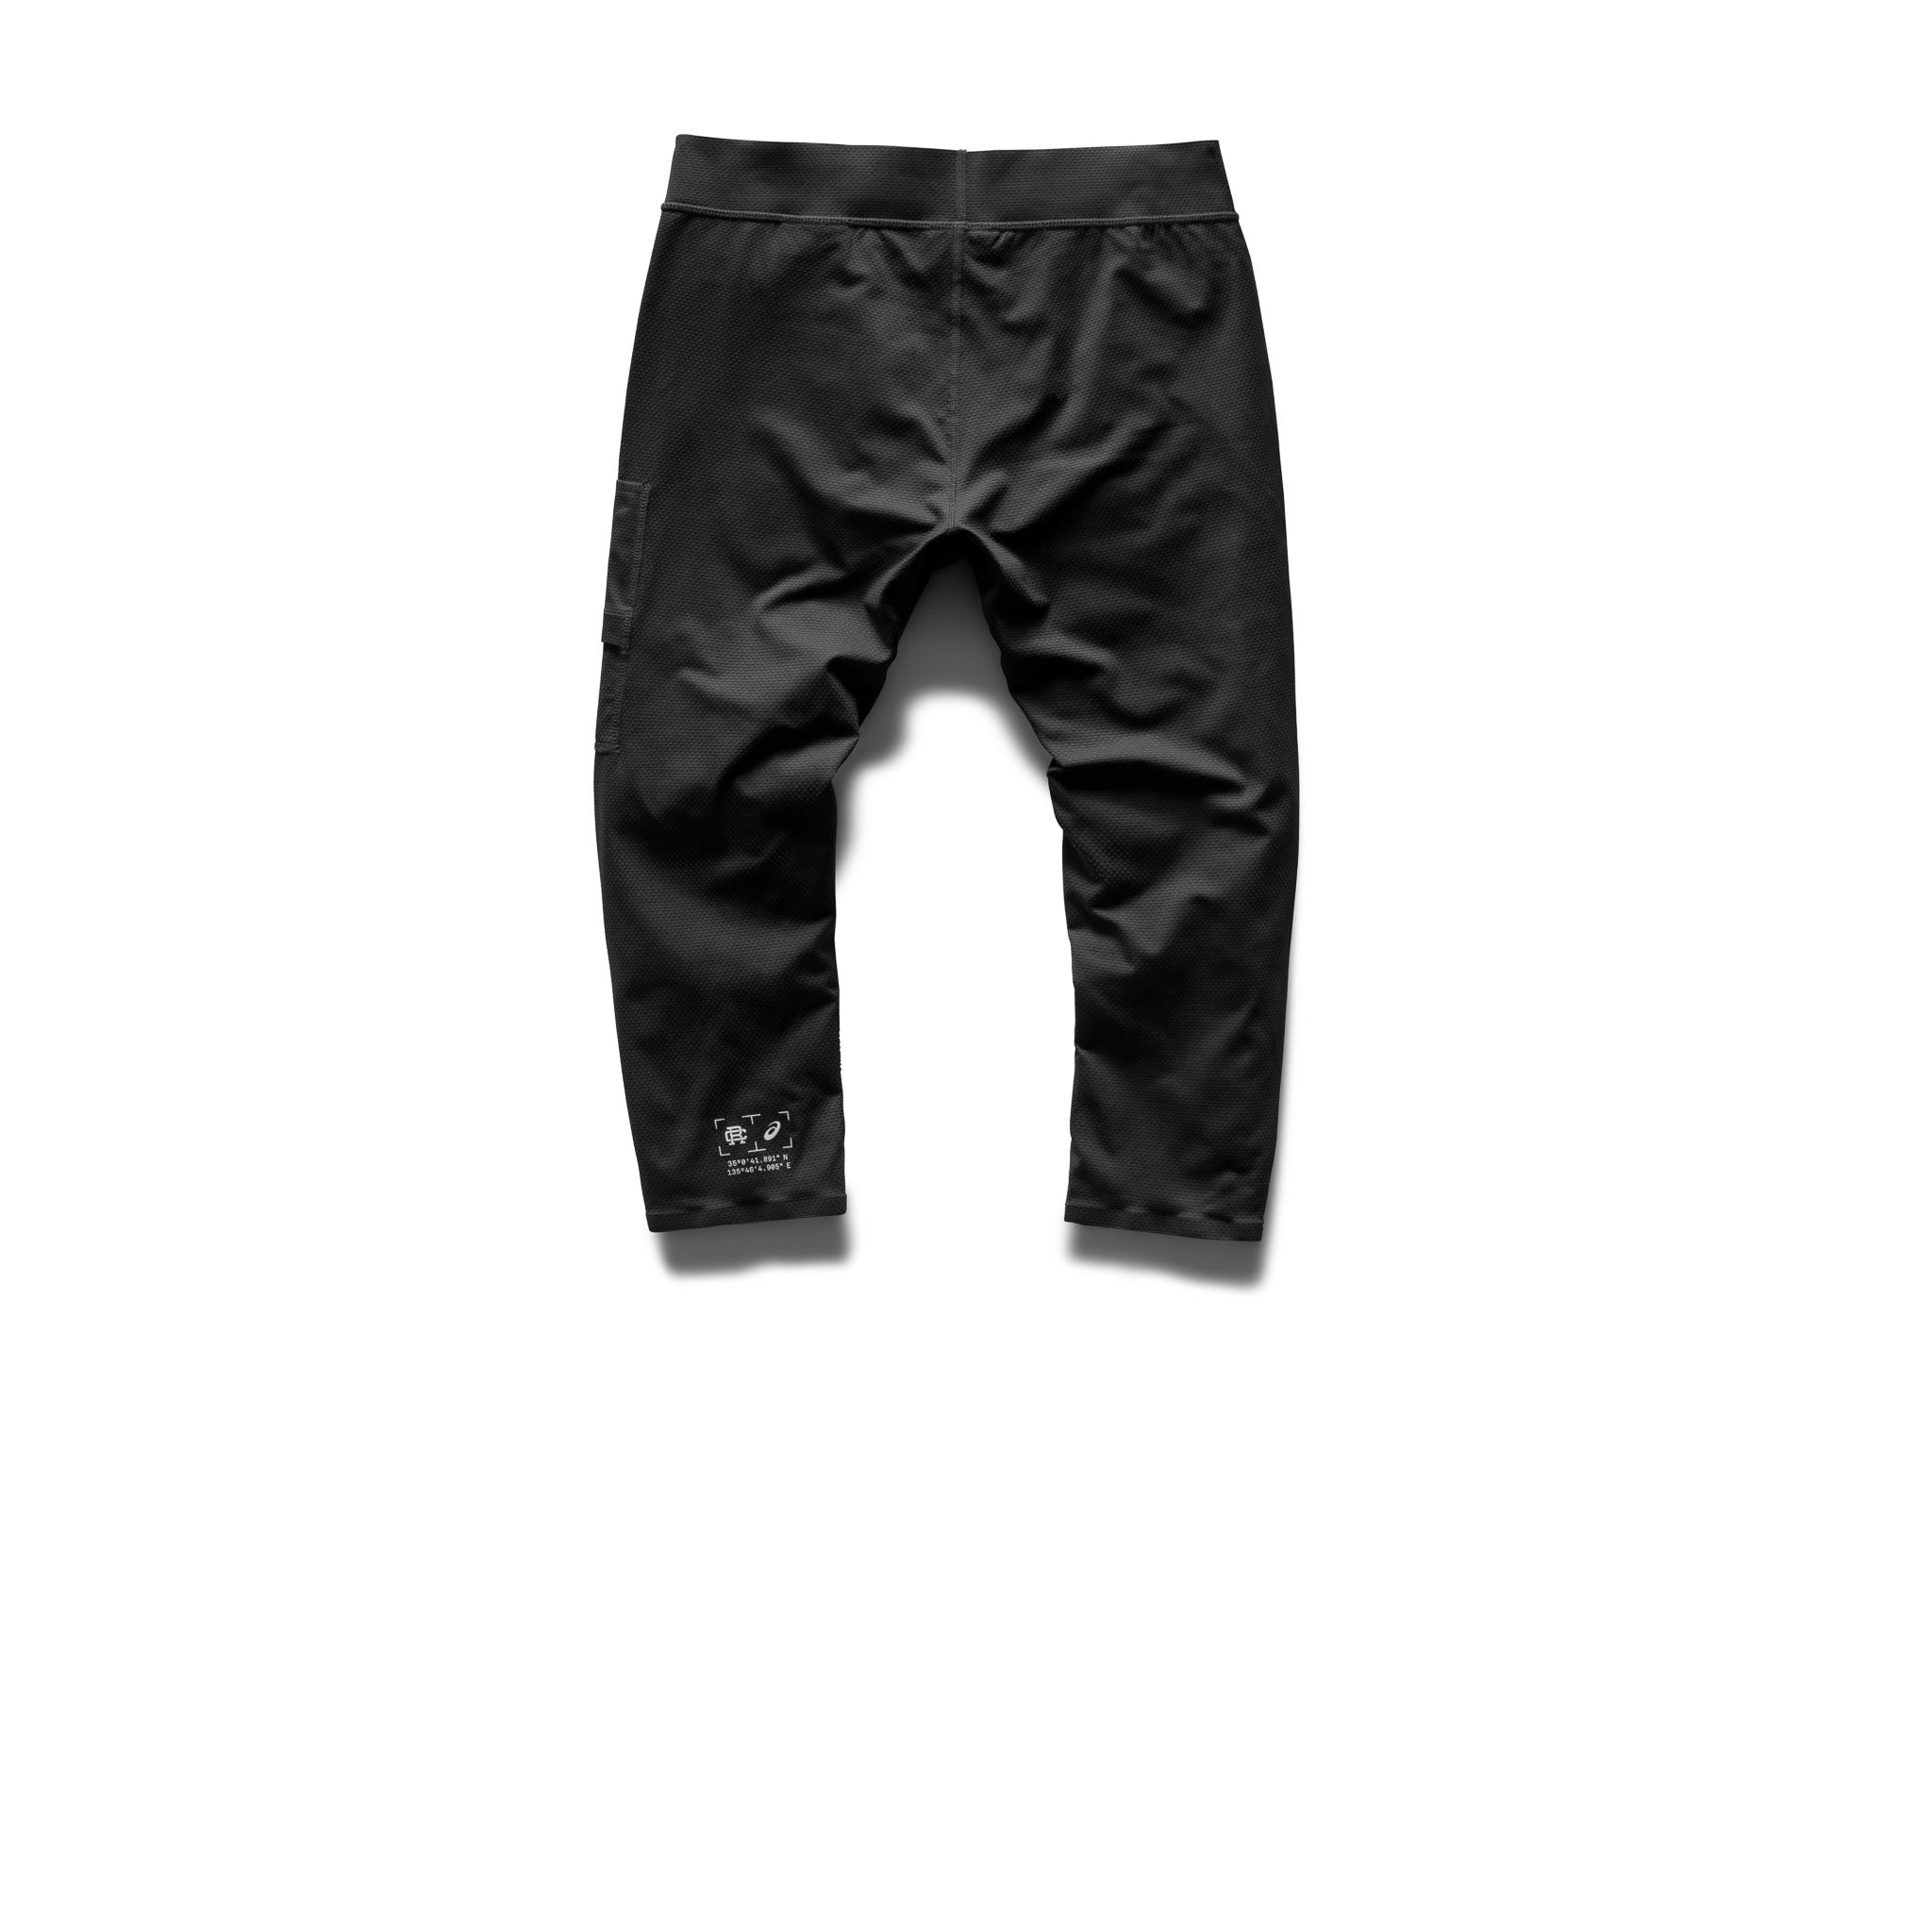 ASICS M'S PANTS 3/4 TIGHT X REIGNING CHAMP